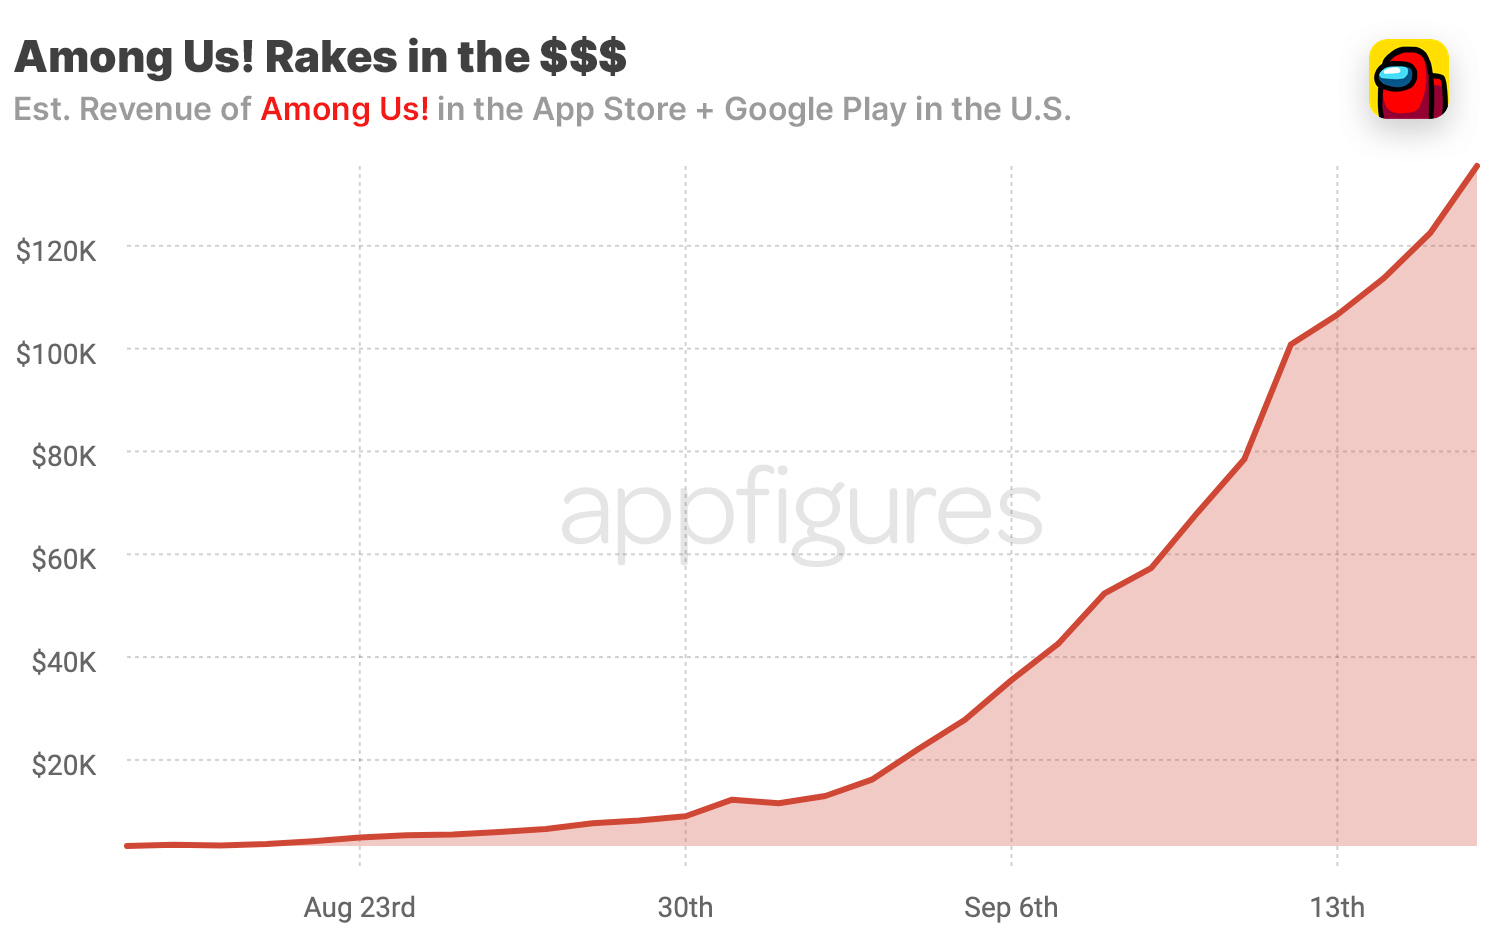 Among Us! revenue on the App Store and Google Play